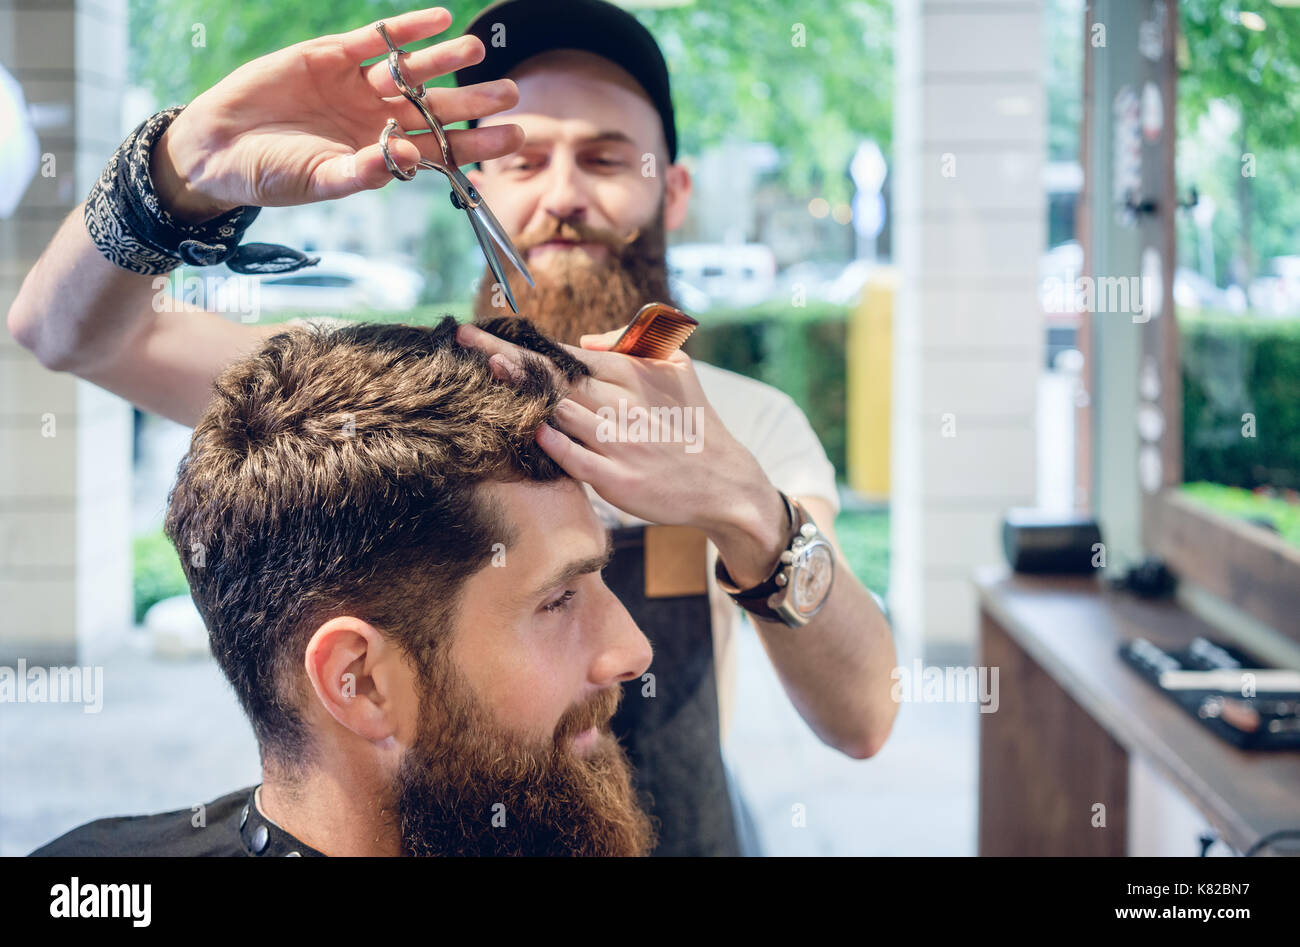 Dedicated hairstylist using scissors and comb while giving a coo - Stock Image